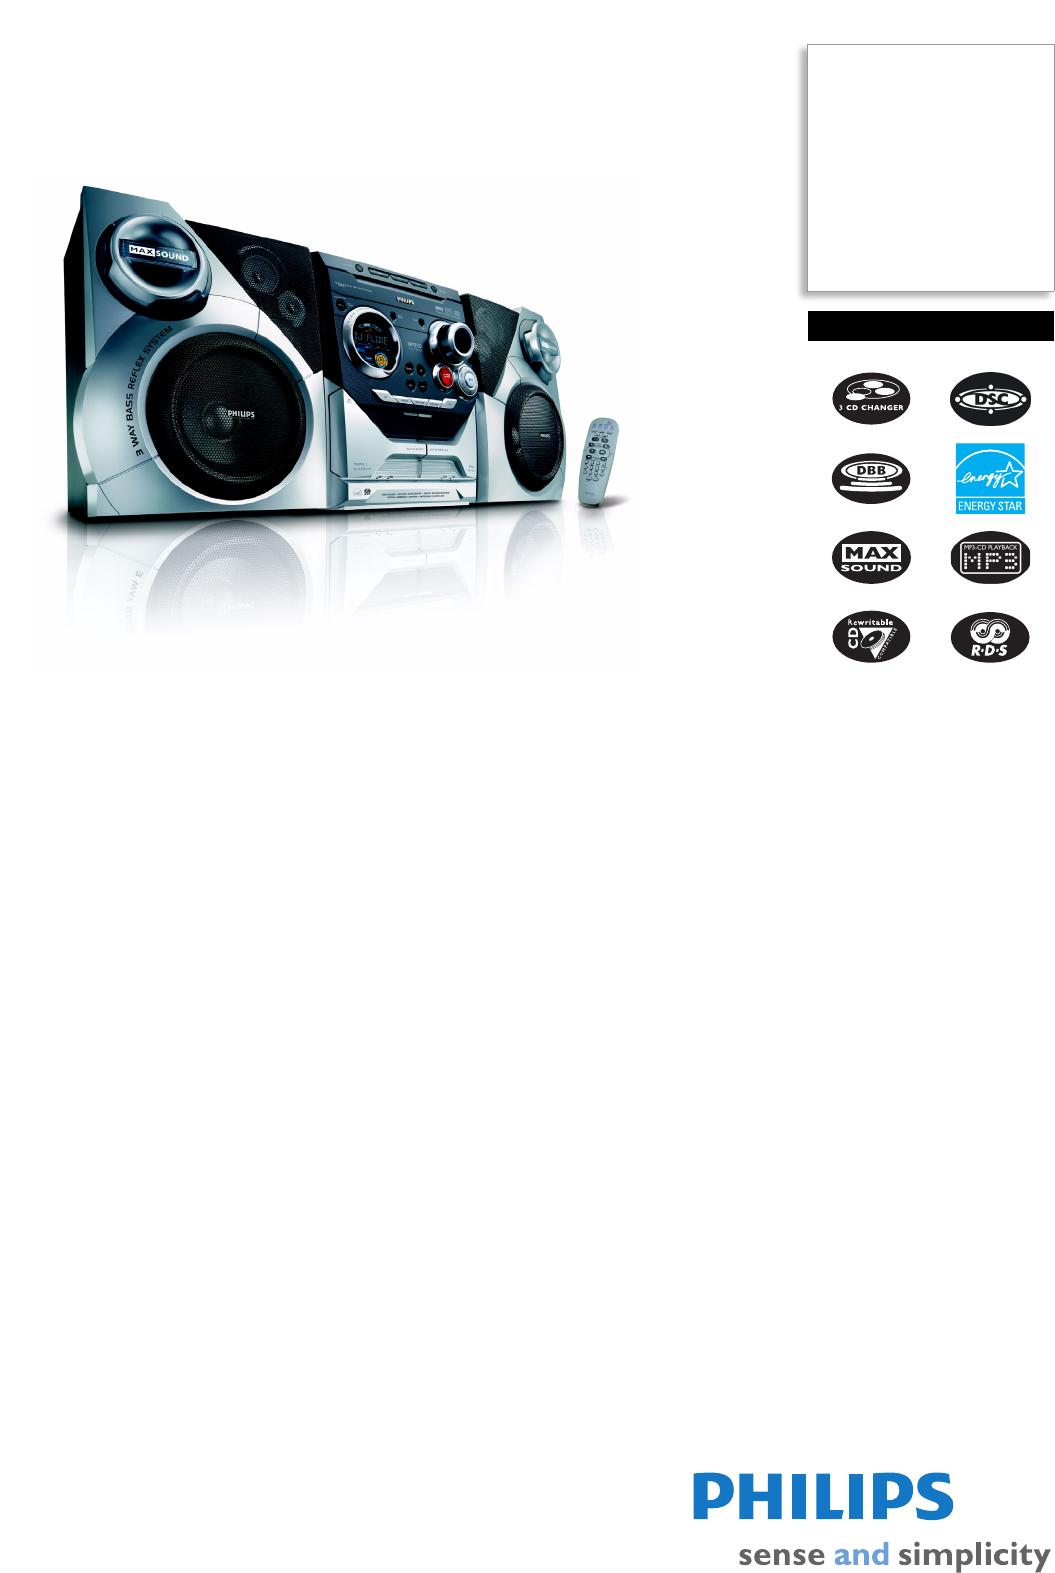 philips stereo system fwm37 user guide manualsonline com rh manualsonline com Philips Electronics Manuals Philips Ultrasound User Manuals